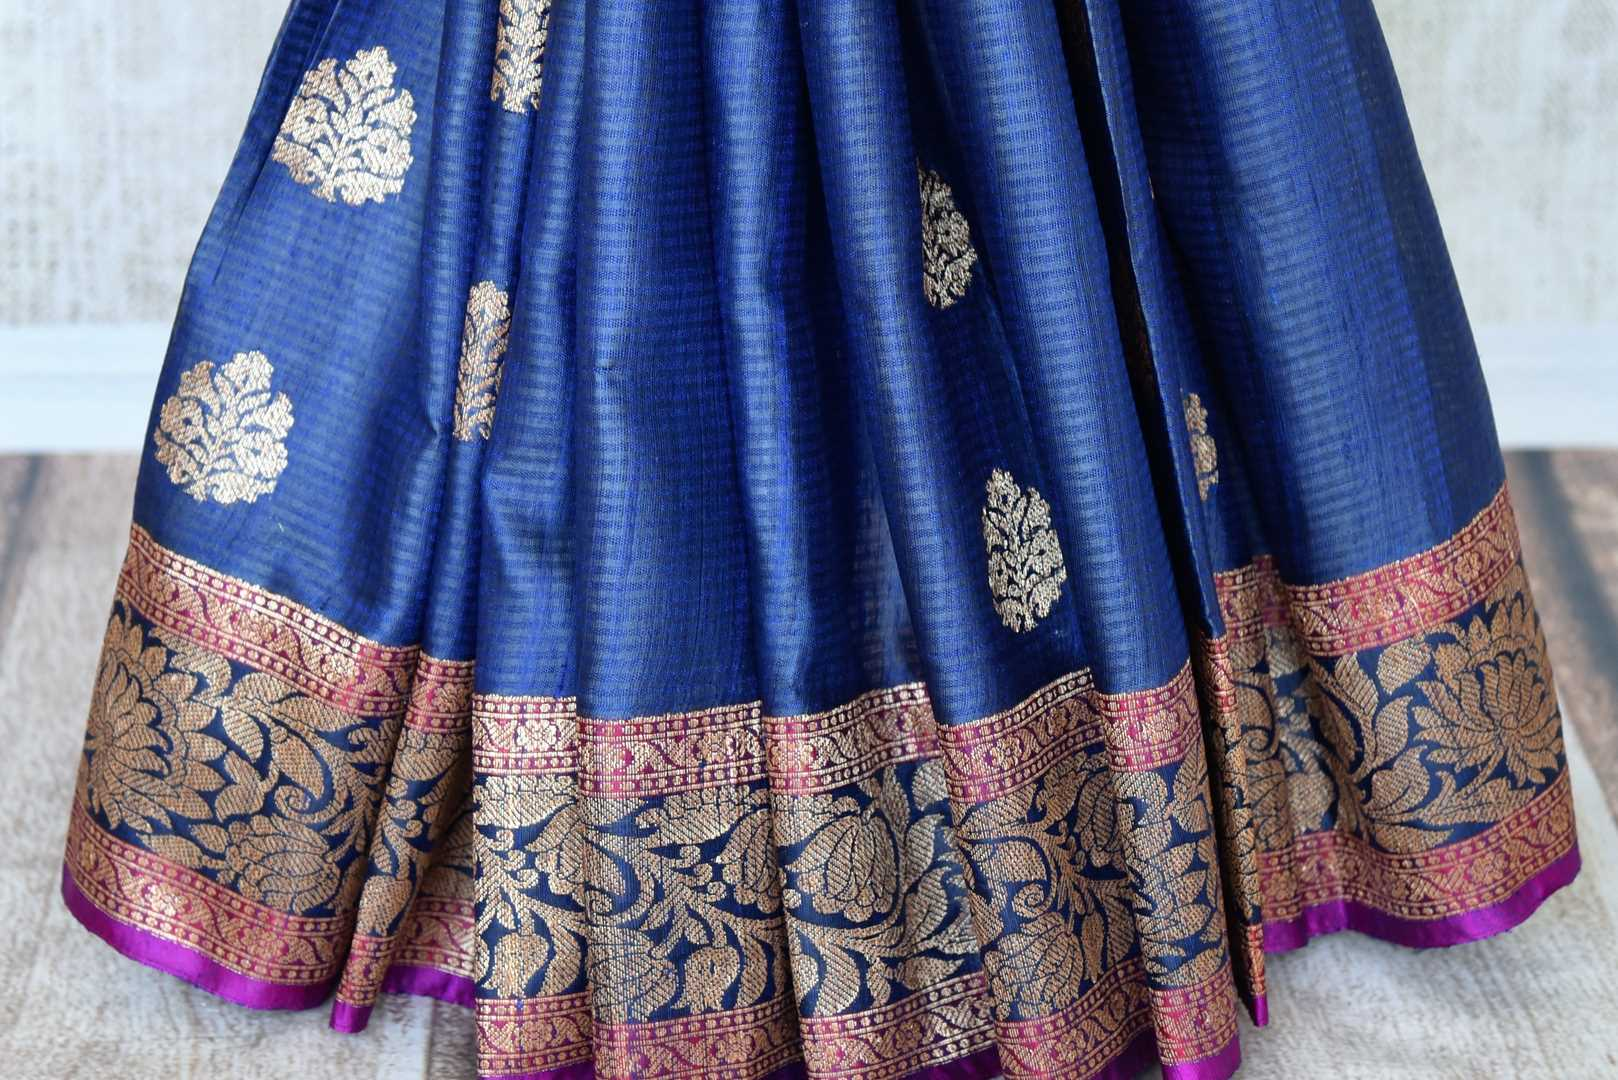 Swing in the gorgeous traditional royal blue tussar banarsi silk sari. It comes with a designer zari border and a contrasting pink designer blouse to steal the show. The buta work all over the sari exudes flamboyance of a kind. Shop designer silk sari, printed saree online or visit Pure Elegance store, USA.-pleats